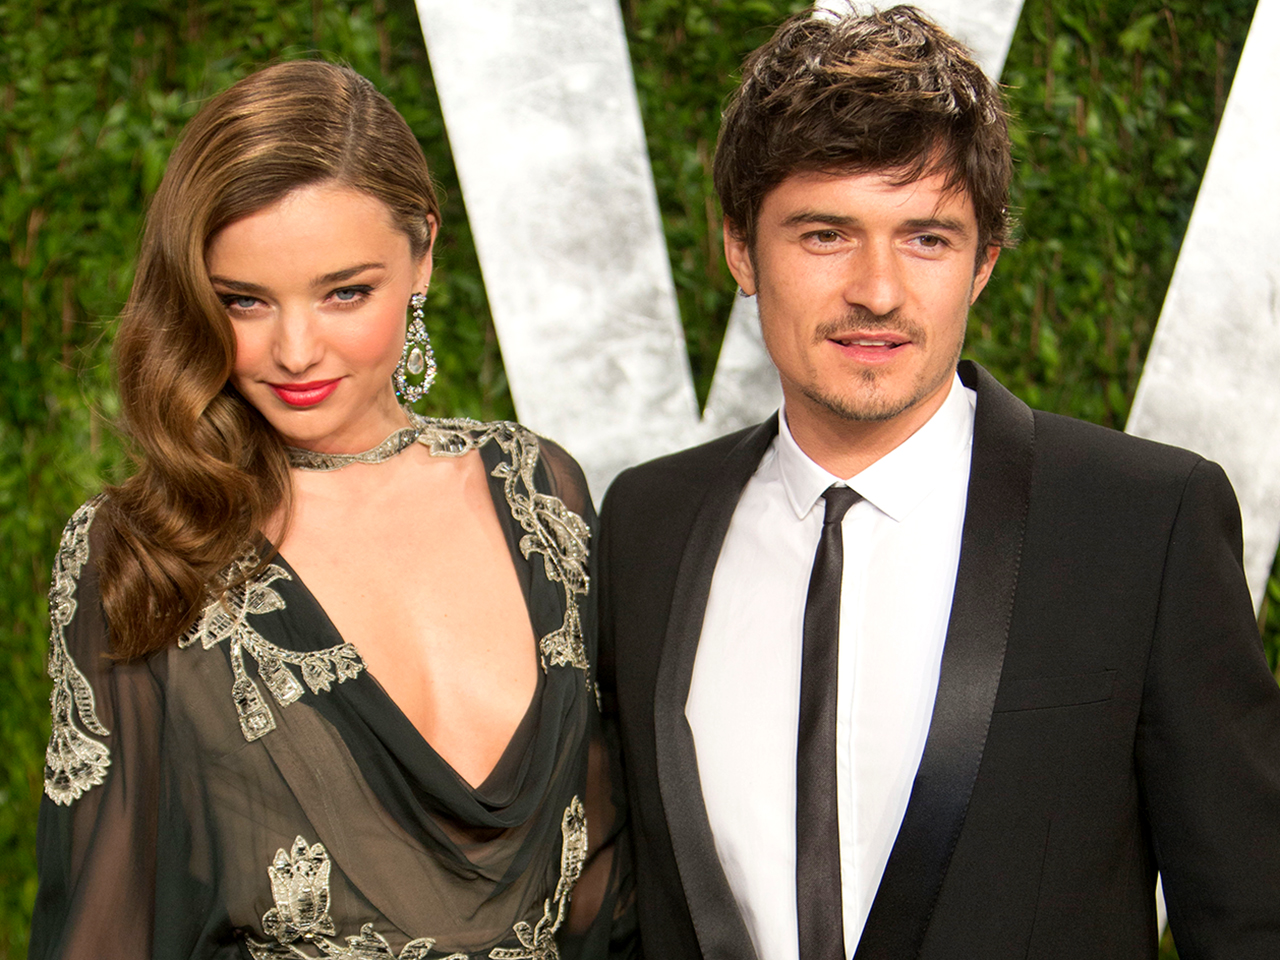 Orlando Bloom splits from wife Miranda Kerr - TODAY.com Orlando Bloom Split